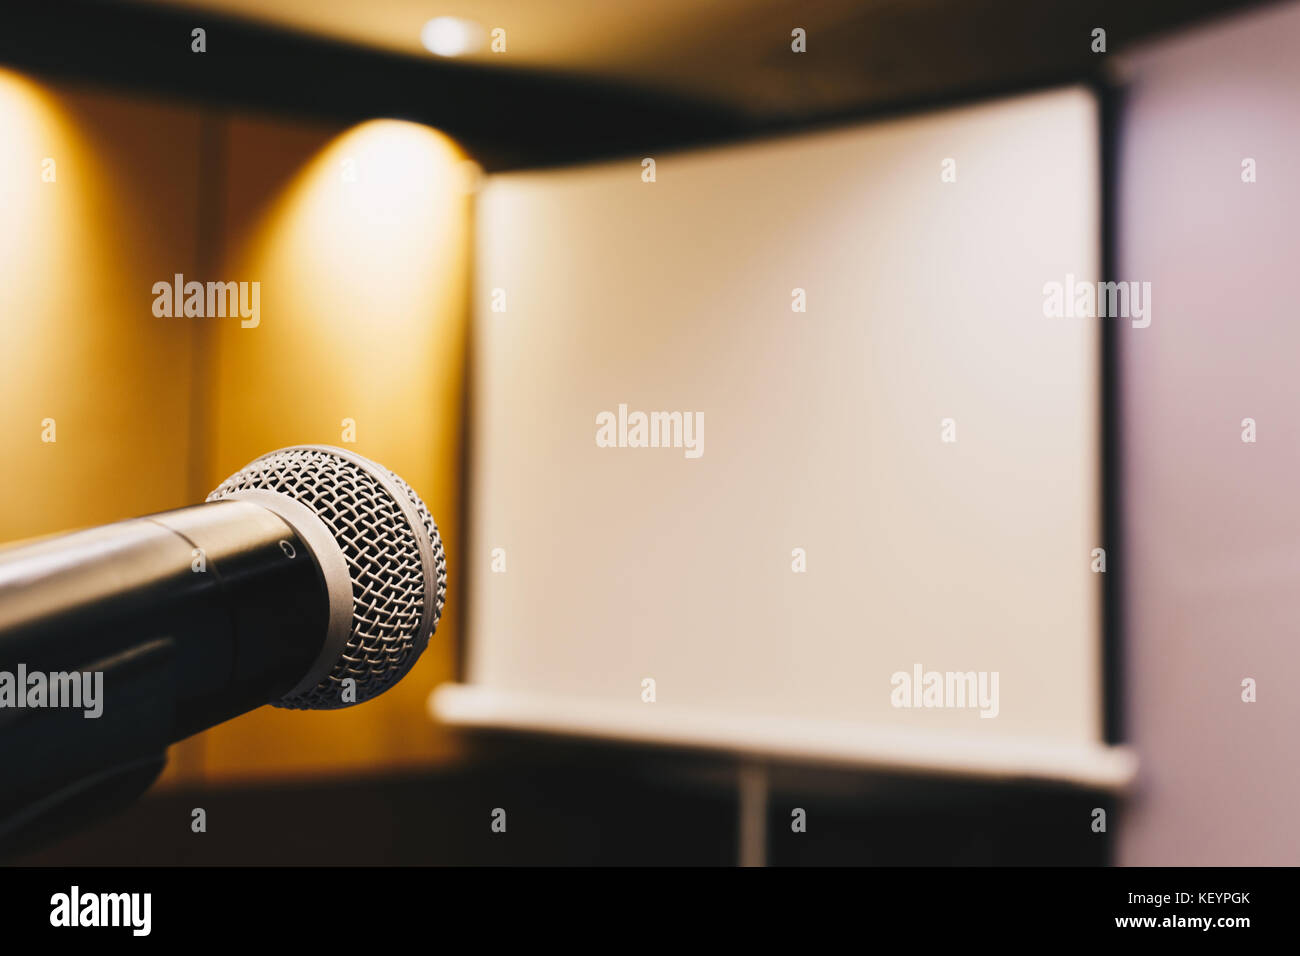 microphone ready to use in the podium and the projector screen on the back of the meeting room for the press conference. - Stock Image